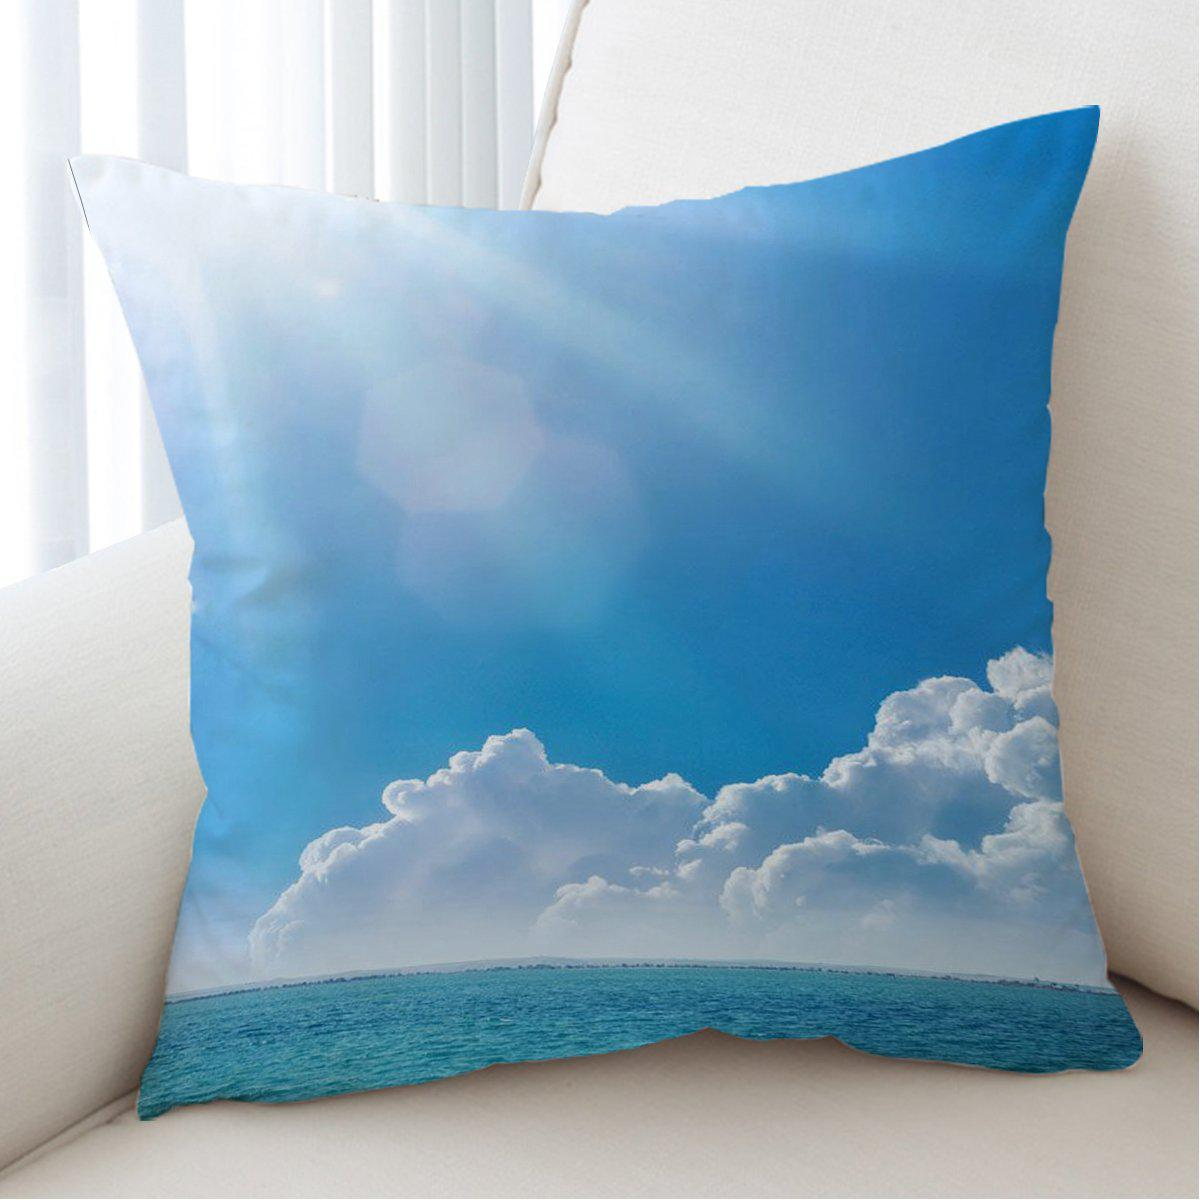 Into the Blue Pillow Cover-Coastal Passion